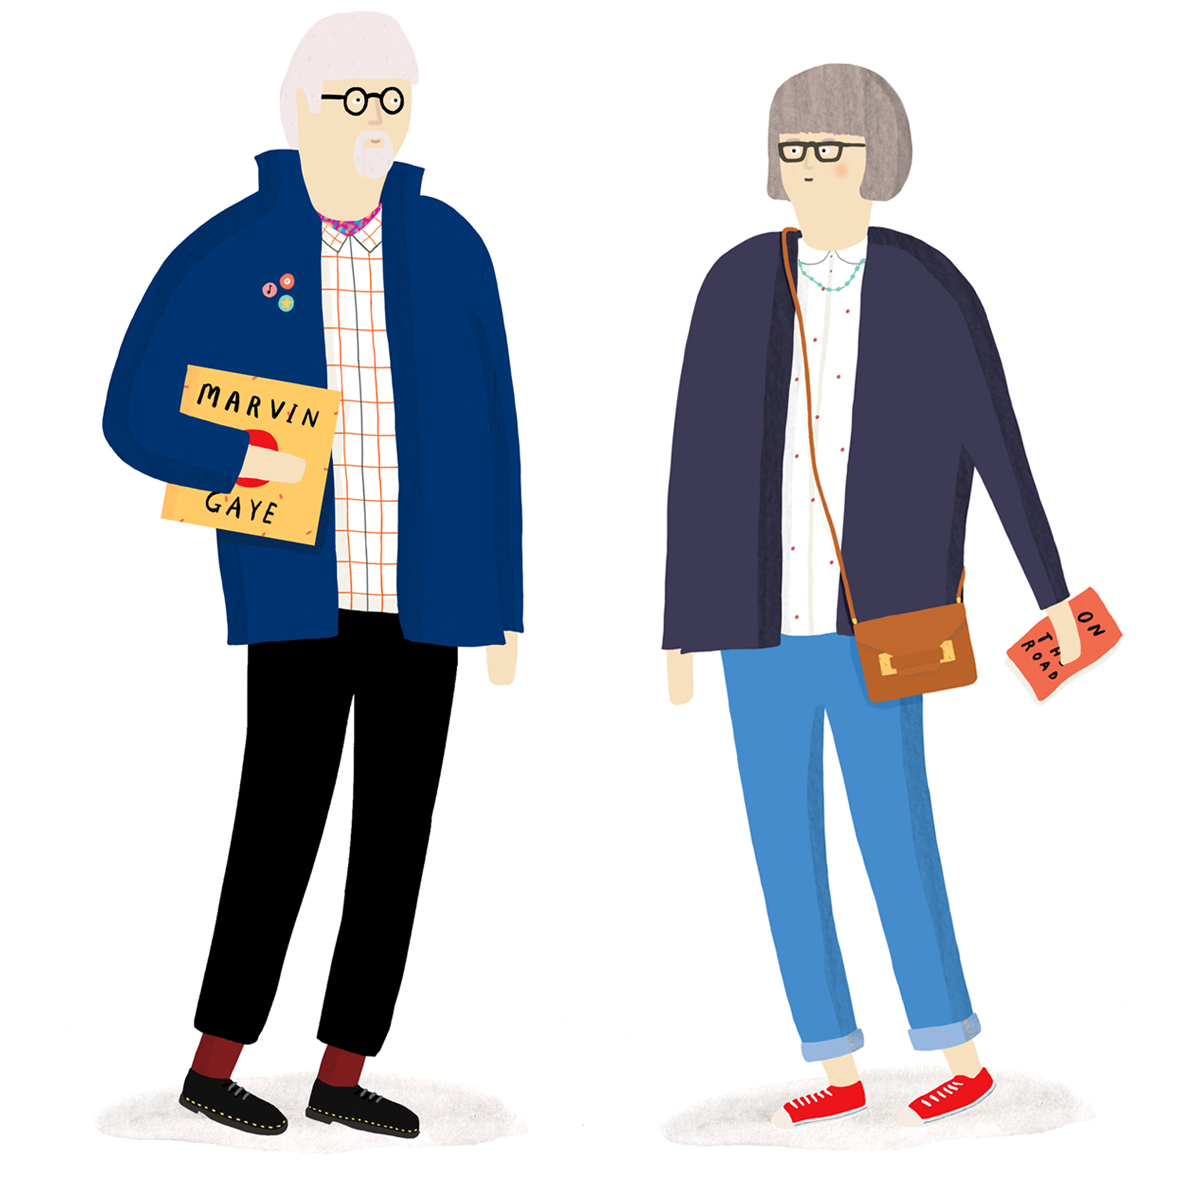 short essay on caring for the elderly Hi, can someone please check this caring for the elderly essay thank youin britain, when someone gets old they often go to live in a home with other old people.